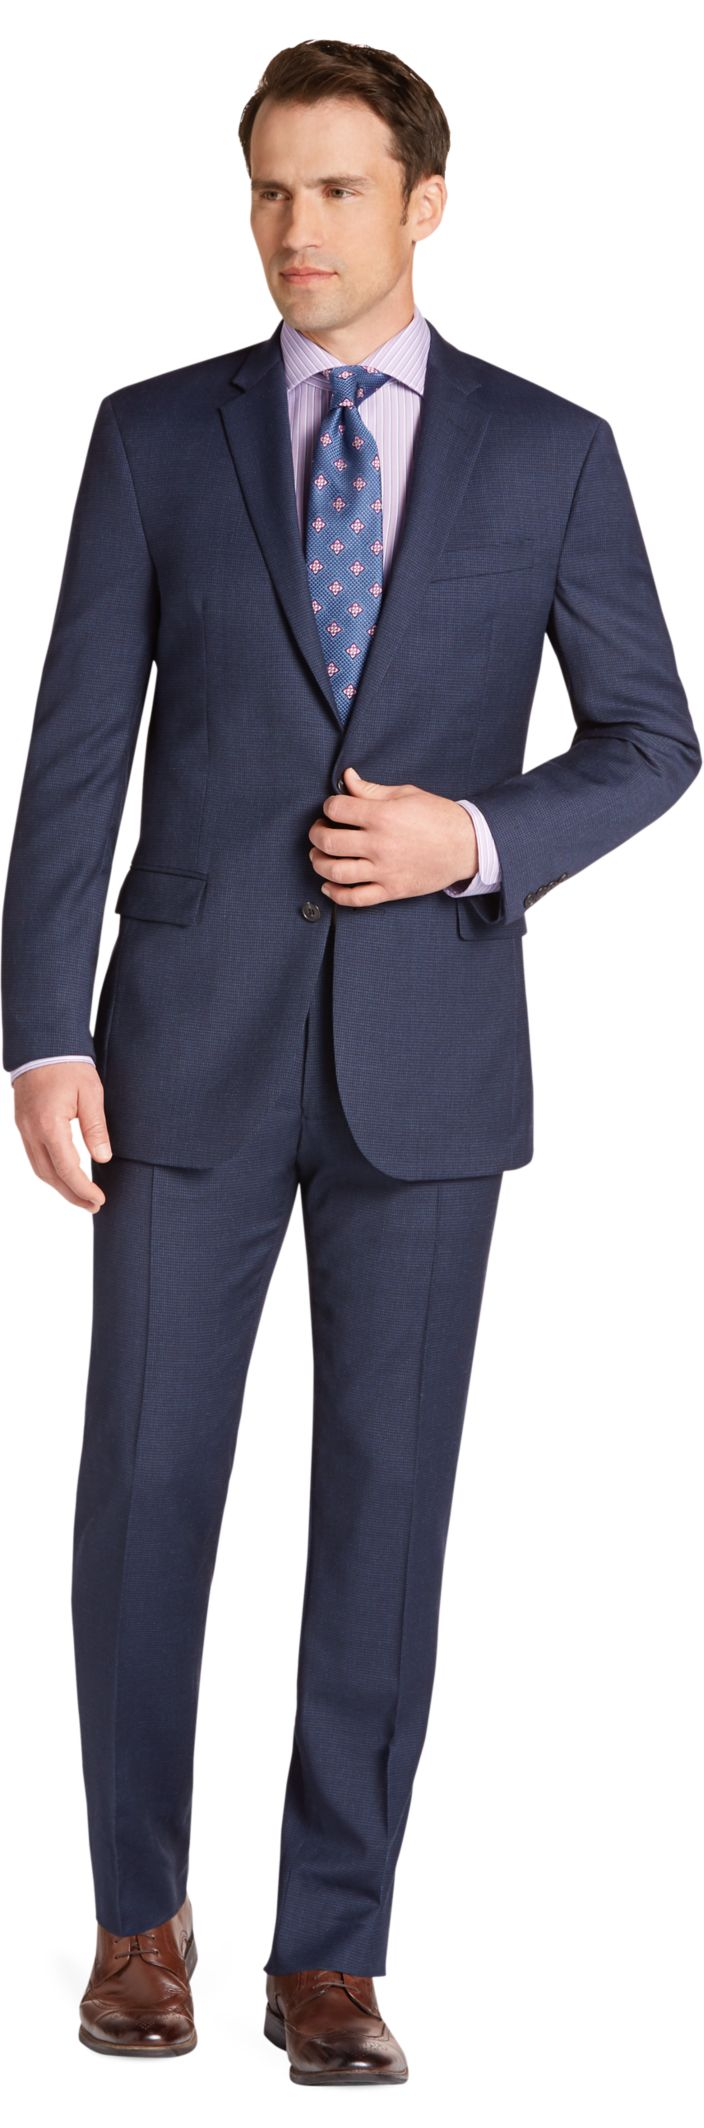 Slim Fit Suits | Shop Men's Skinny Fit Suits | JoS. A. Bank Clothiers